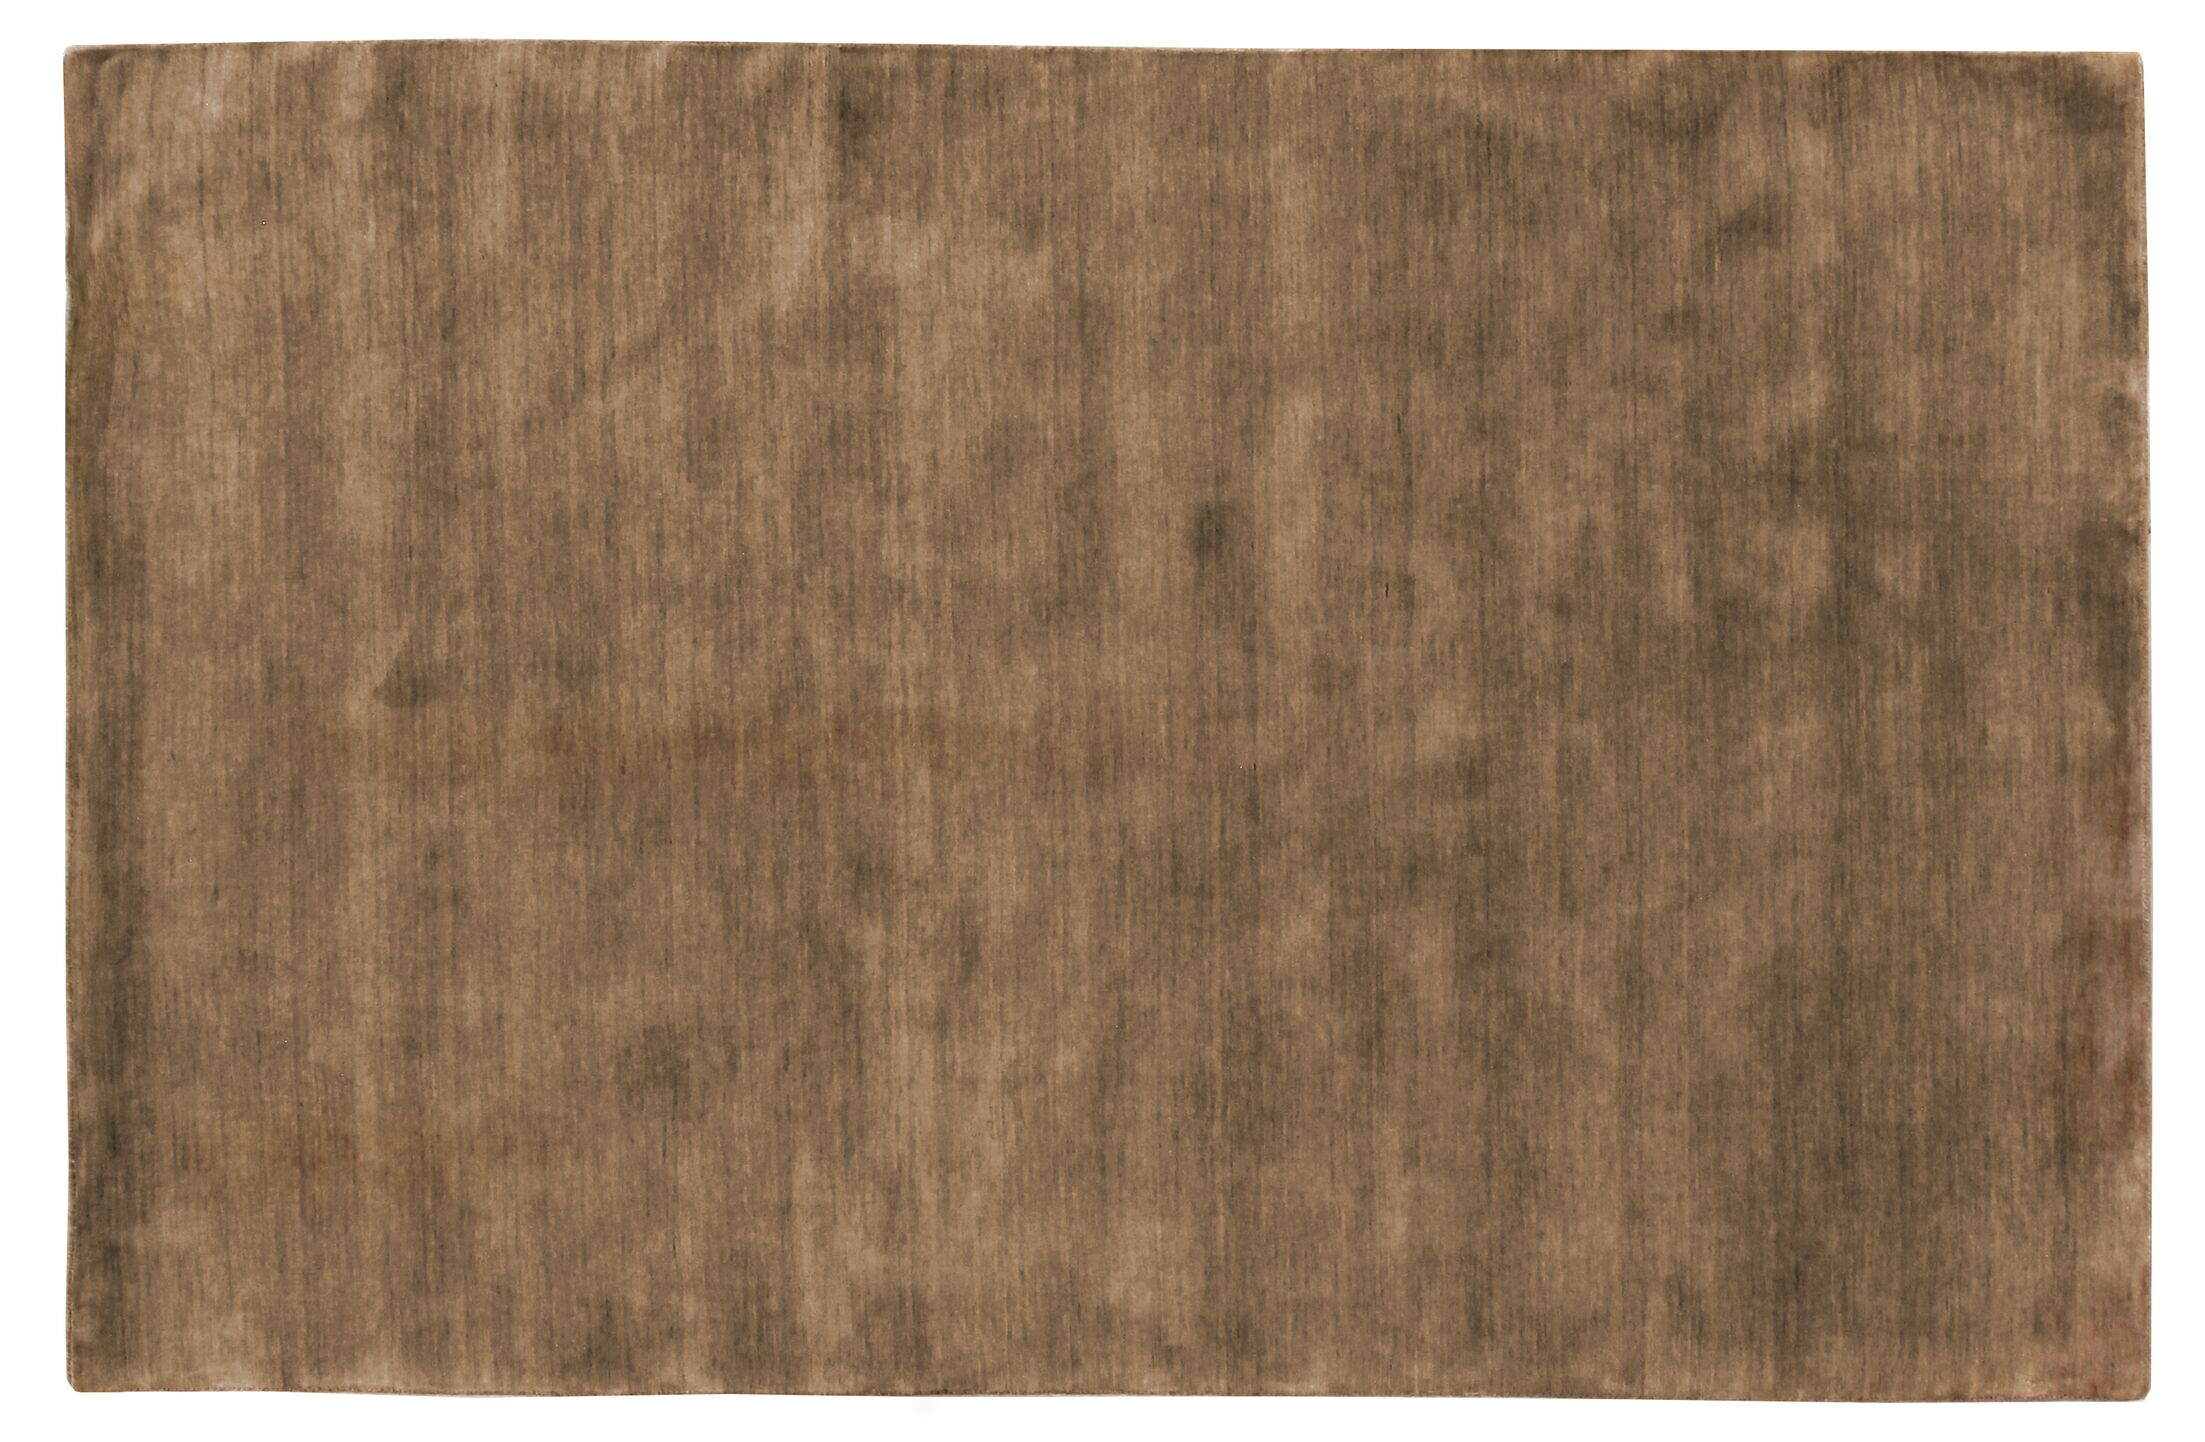 Dove Hand Woven Wool Taupe Area Rug Rug Size: Rectangle 6' x 9'